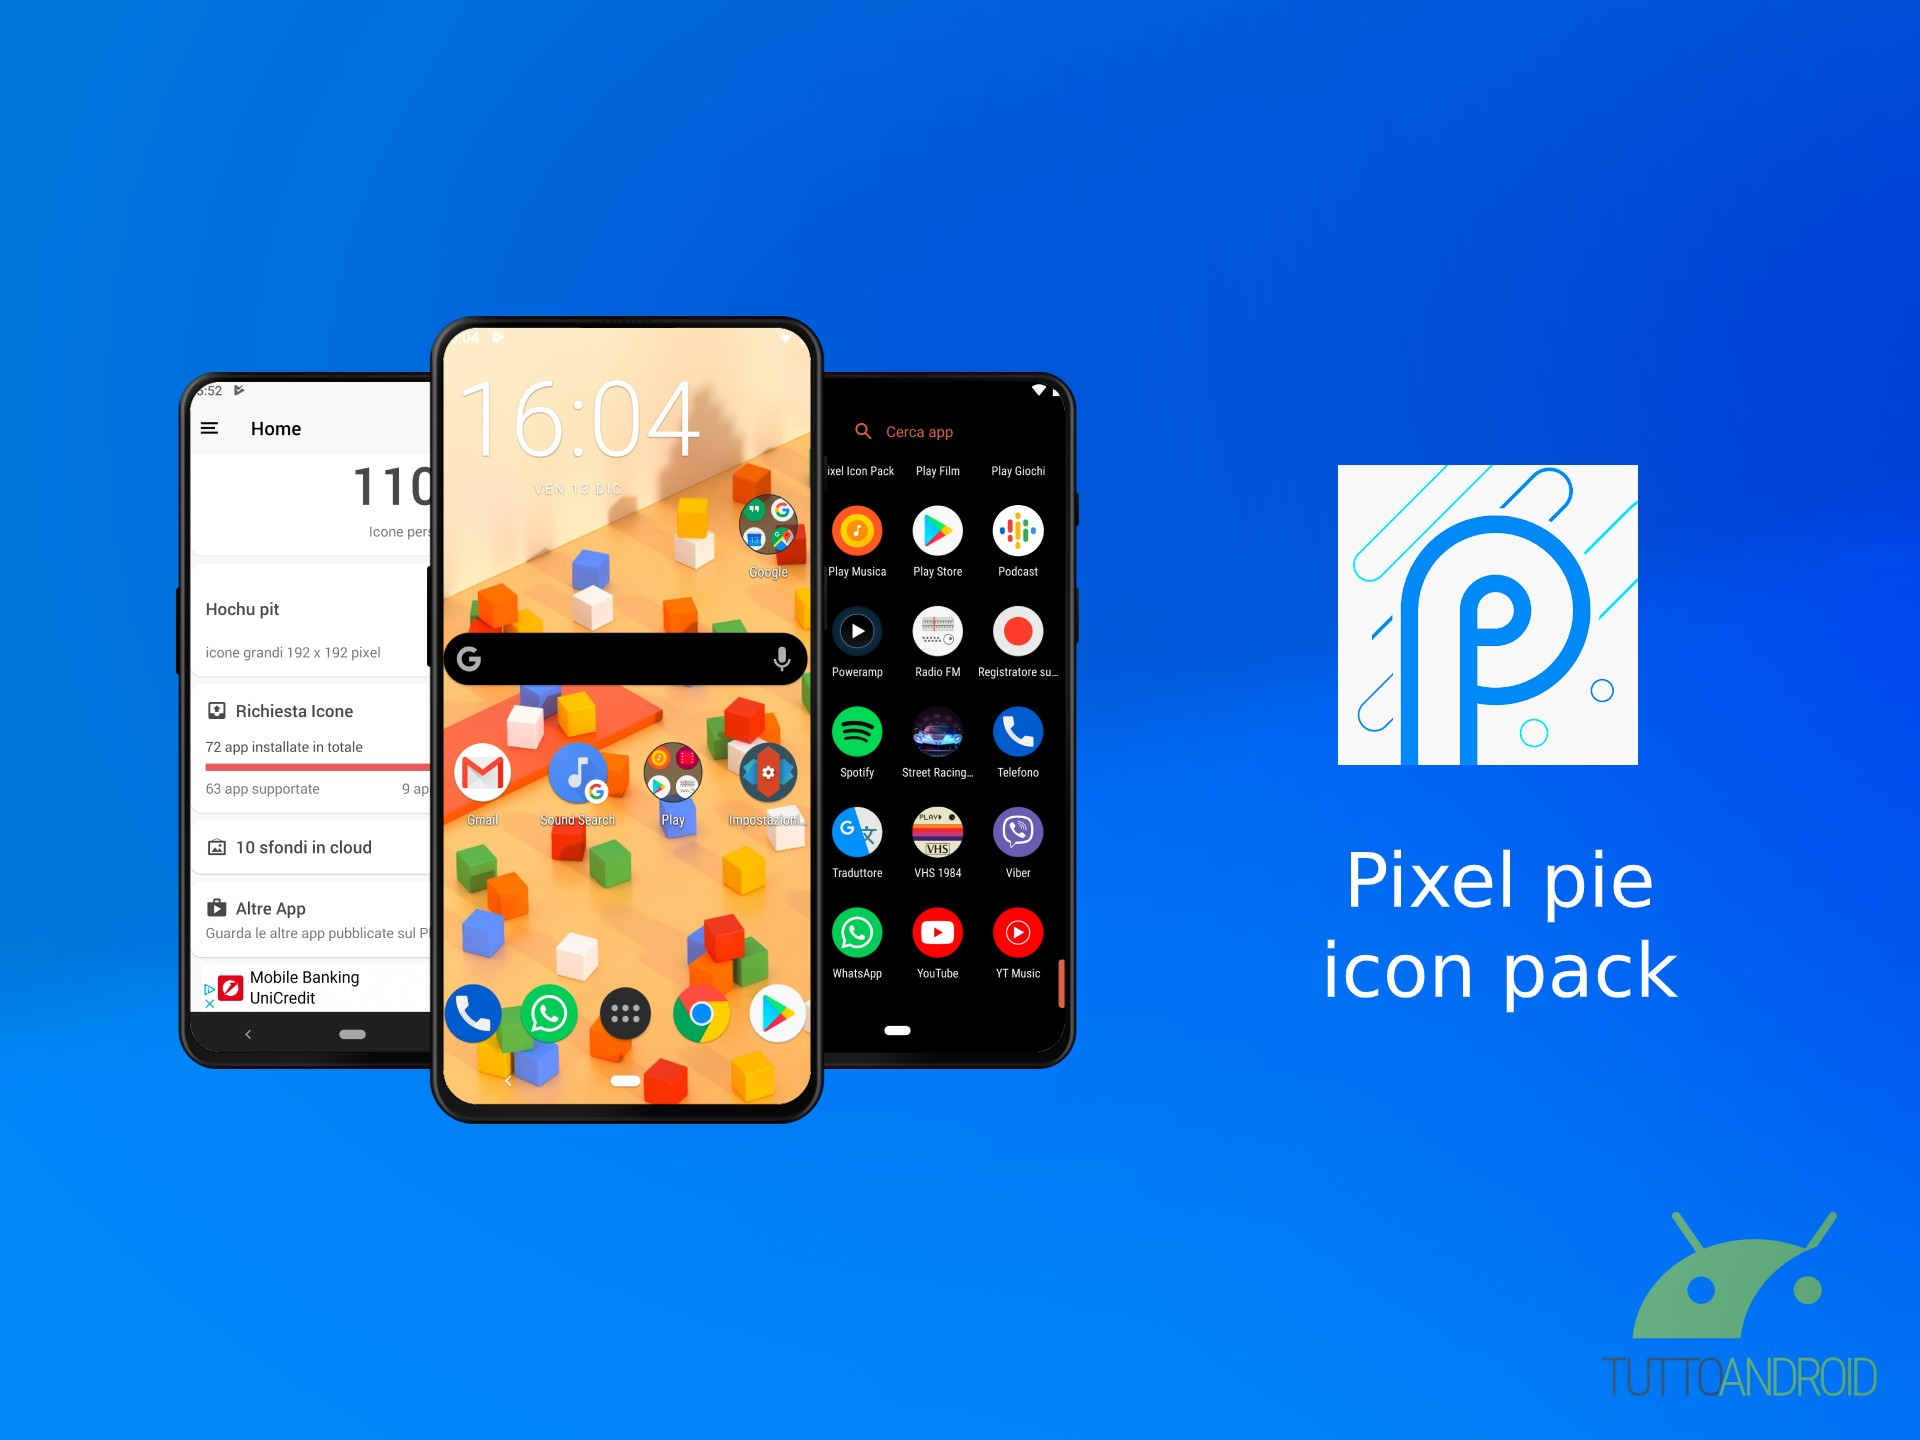 Pixel pie icon pack offre oltre 11.000 icone in stile Google